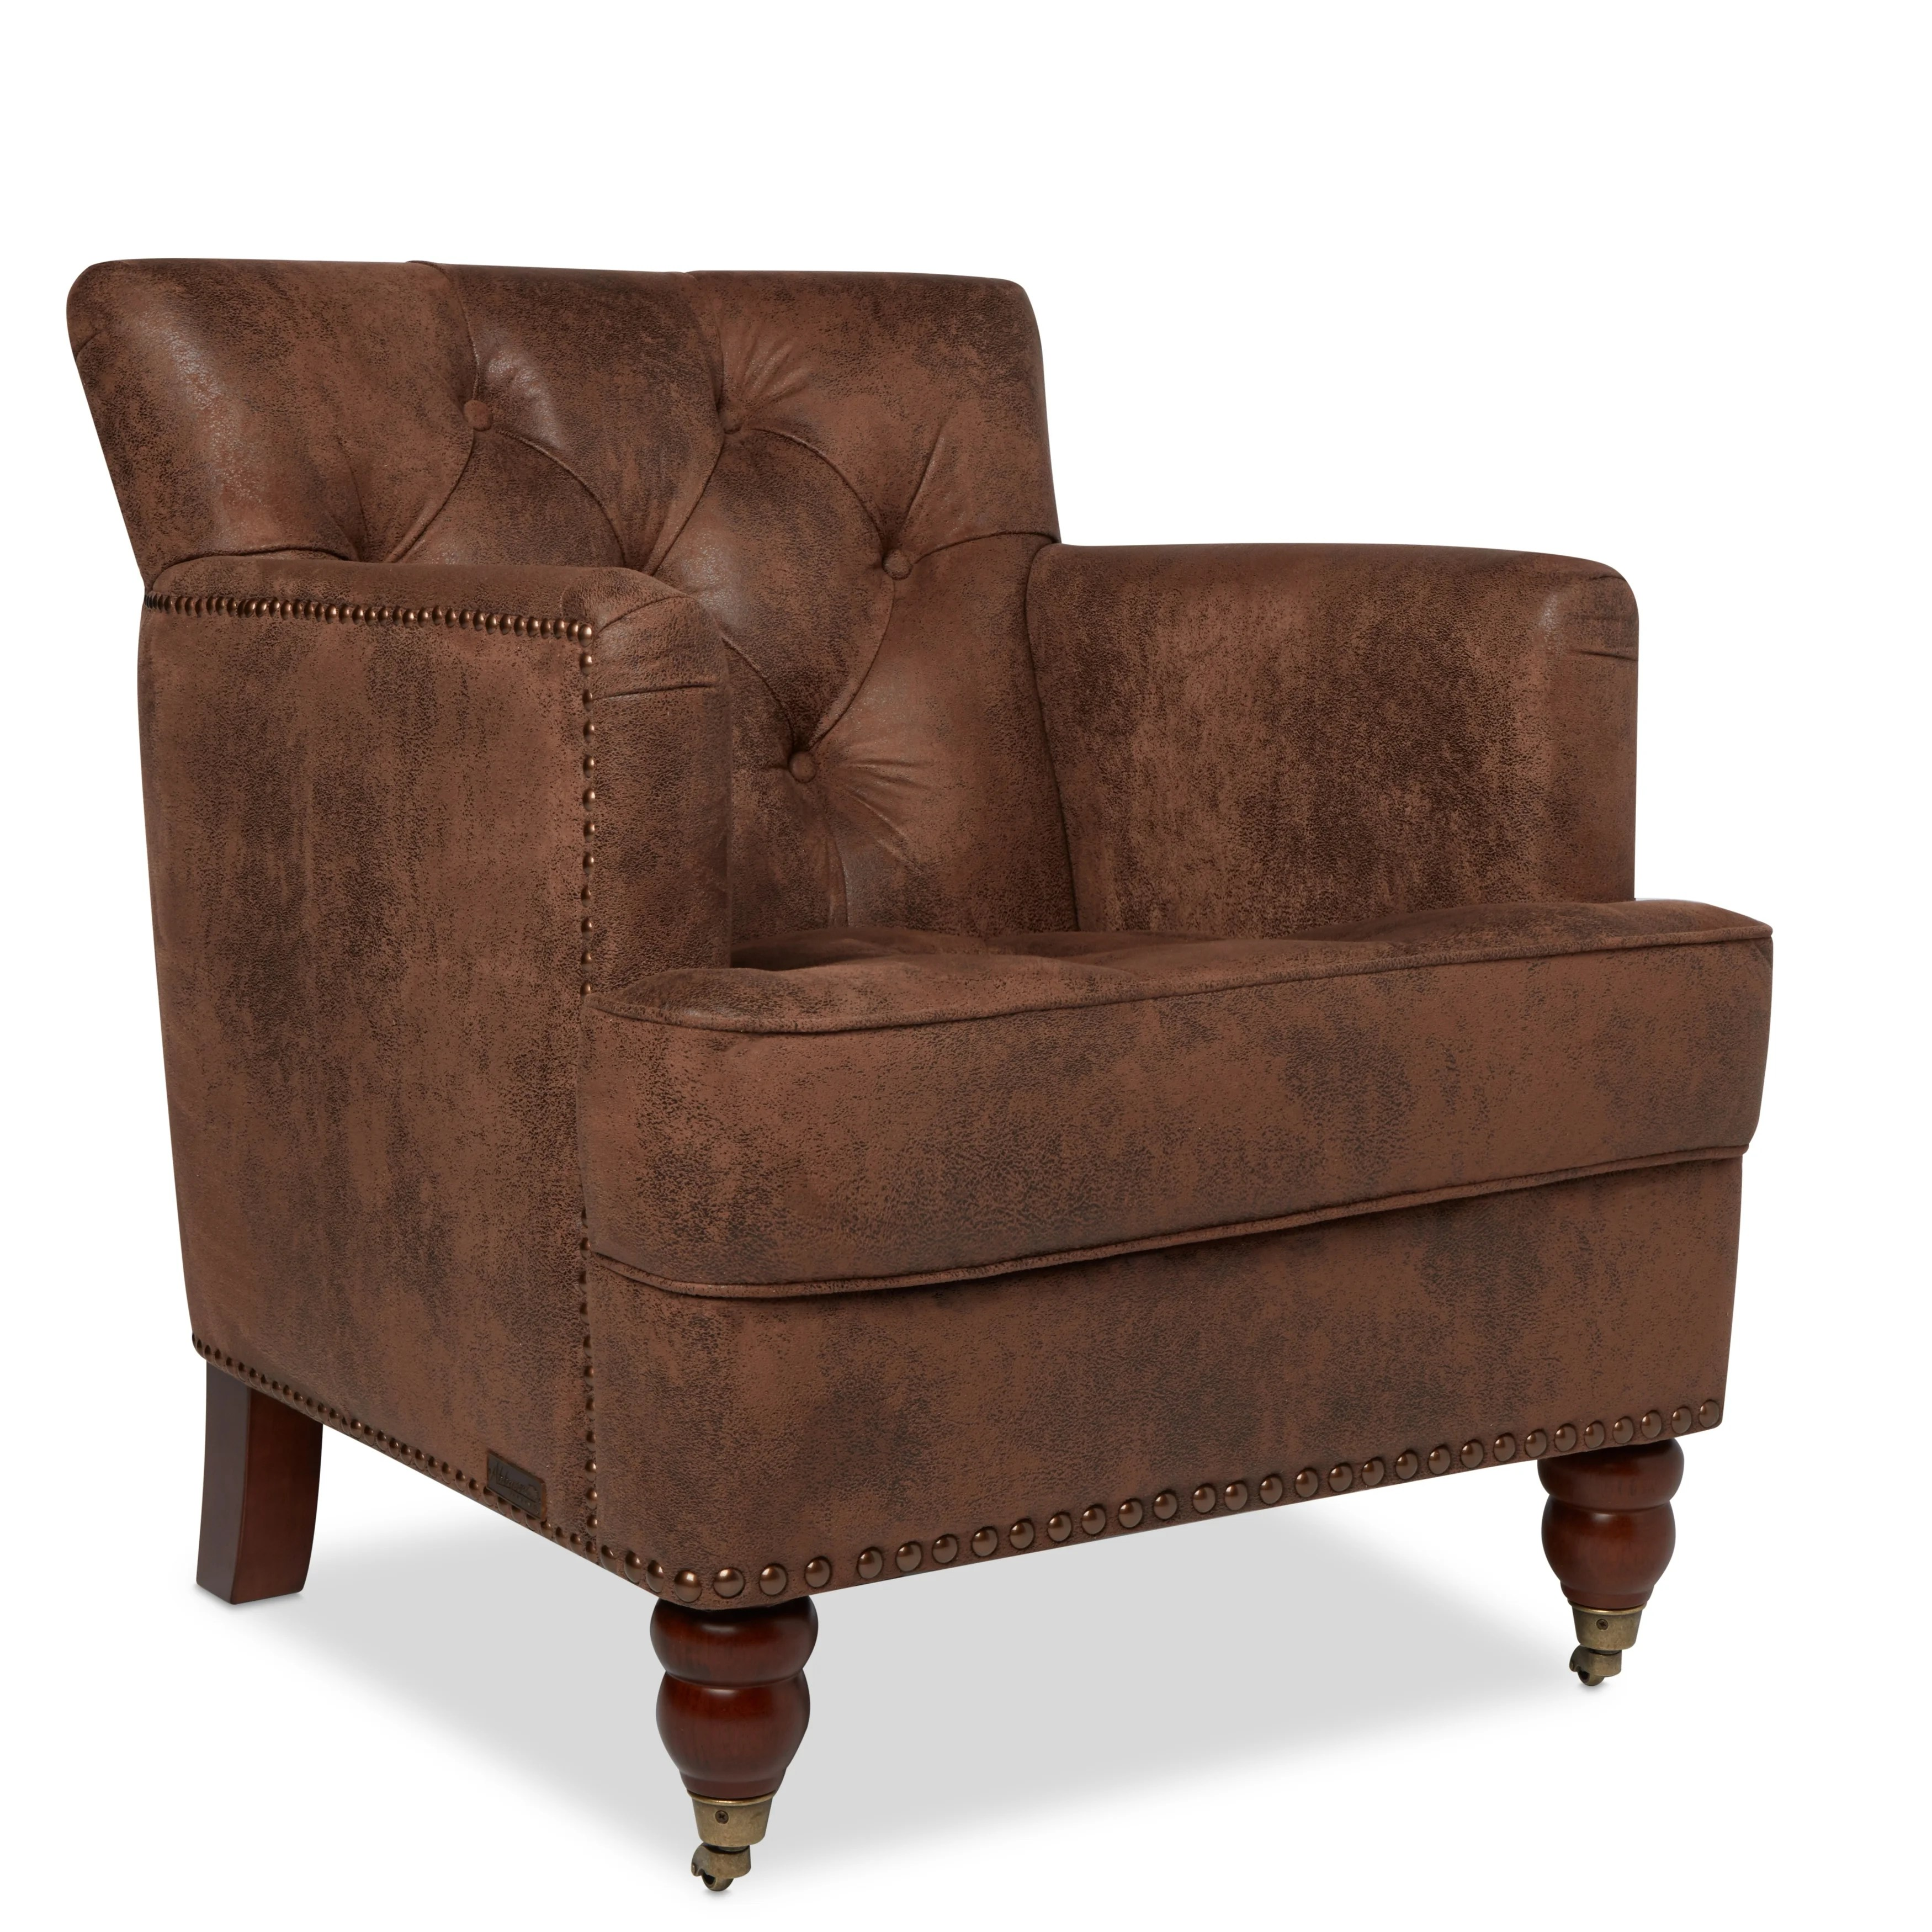 tafton club chair step ladder buy living room chairs online at overstock our best